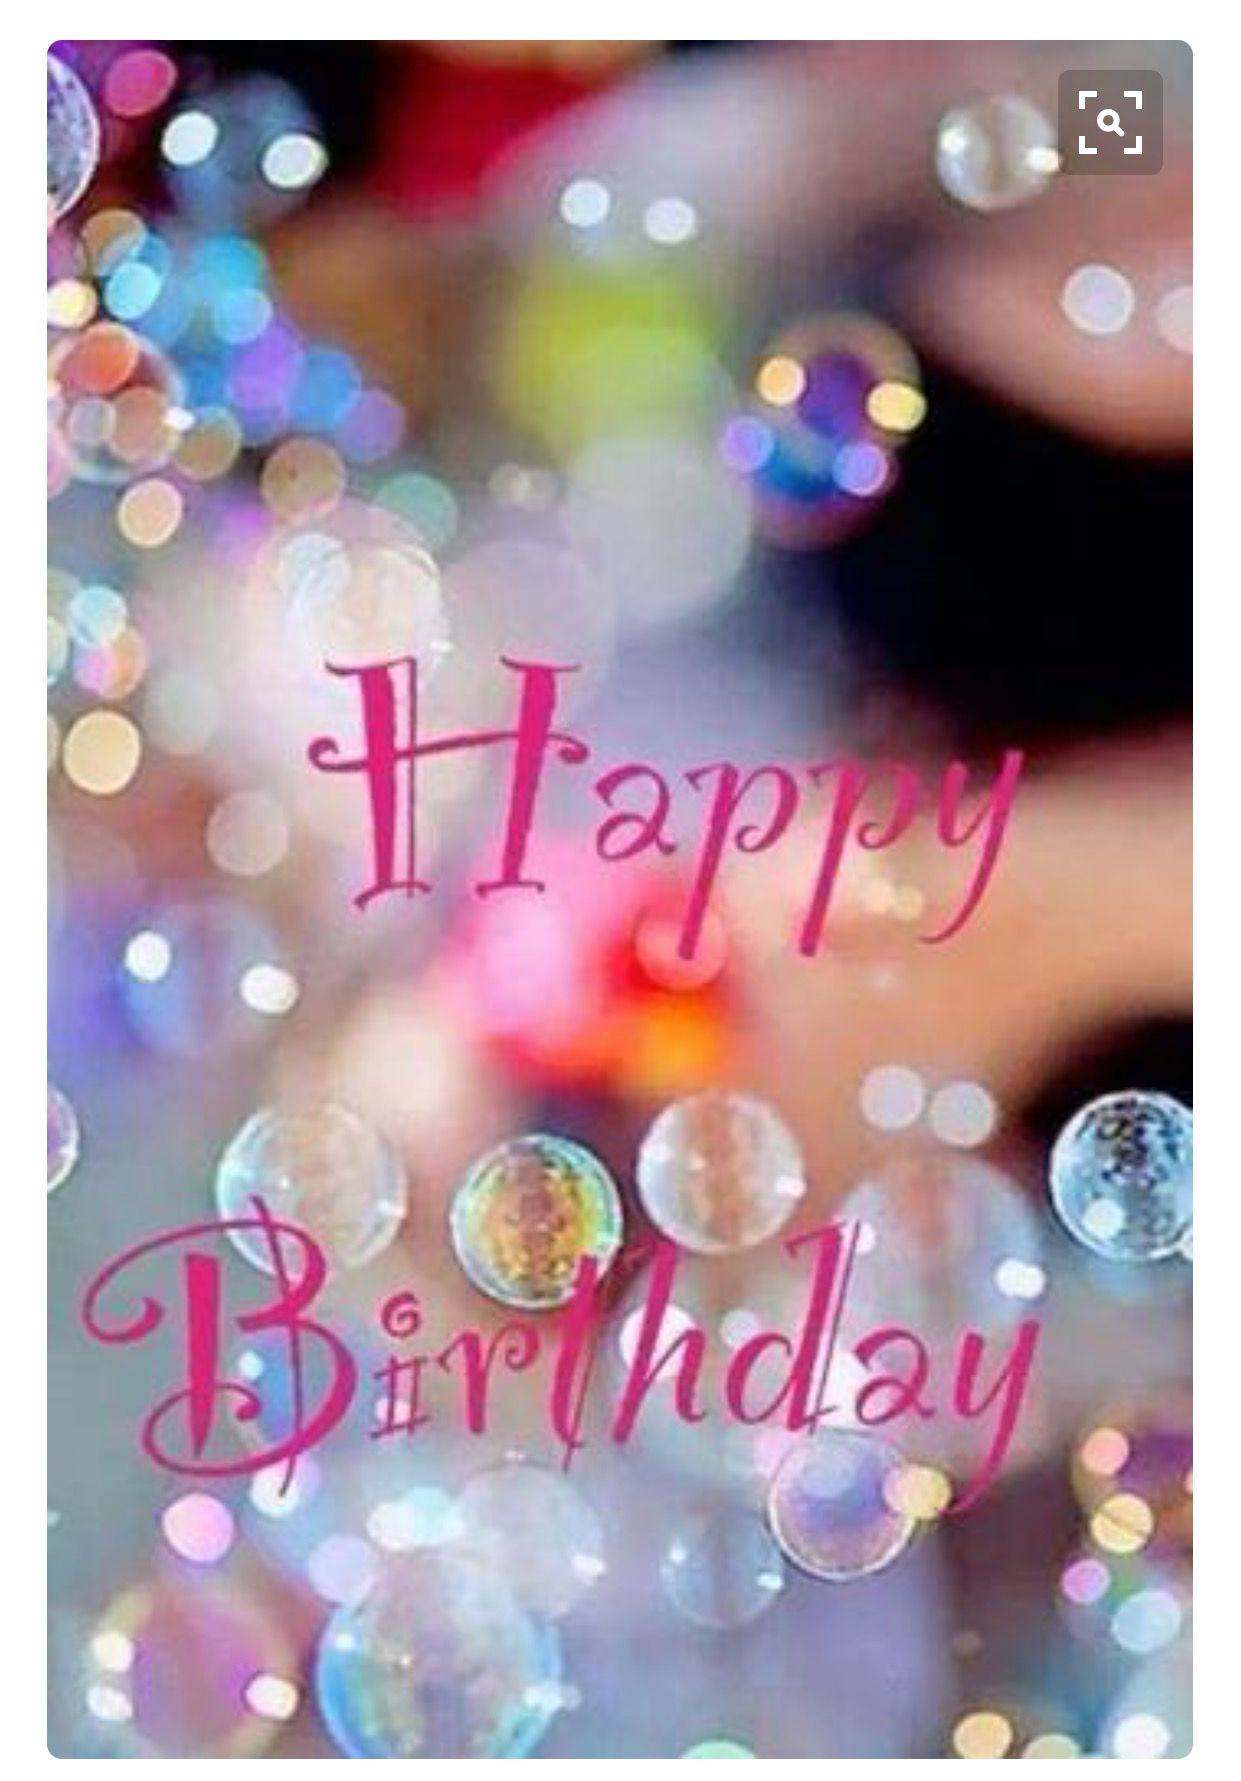 Pin by maria tidwell on birthdayshumoranniversary pinterest happy bday wishes happy birthday pics birthday signs happy birthdays birthday greetings birthday parties friend birthday quotes invitation cards stopboris Images